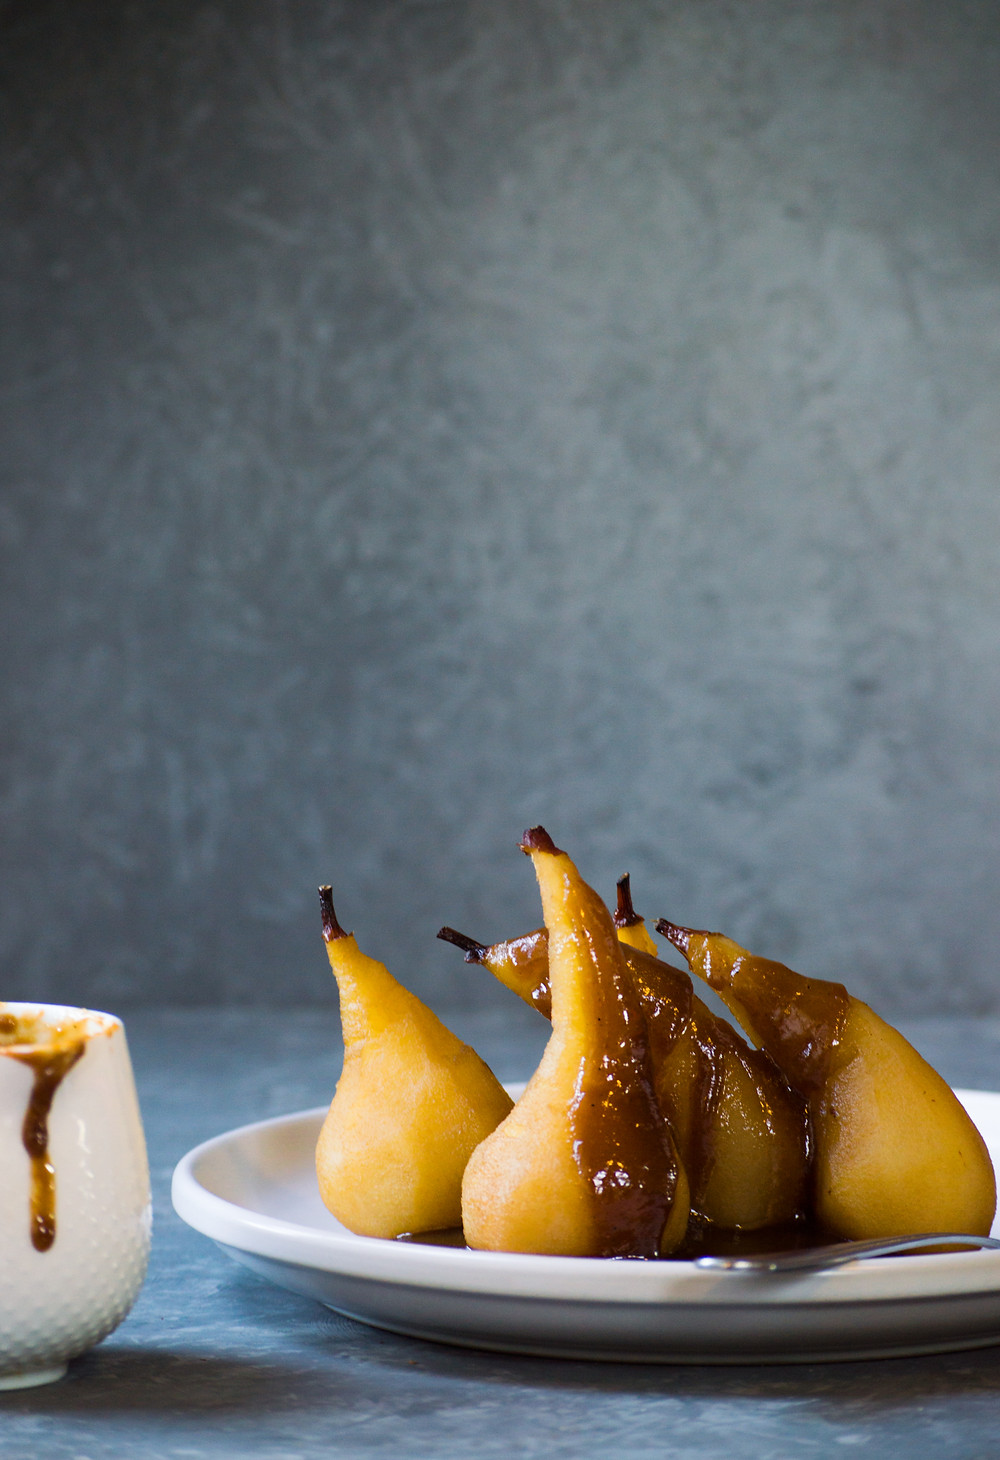 Poached pears, Spiced, caramel espresso sauce, bay leaf, Organic Kitchen Gardens